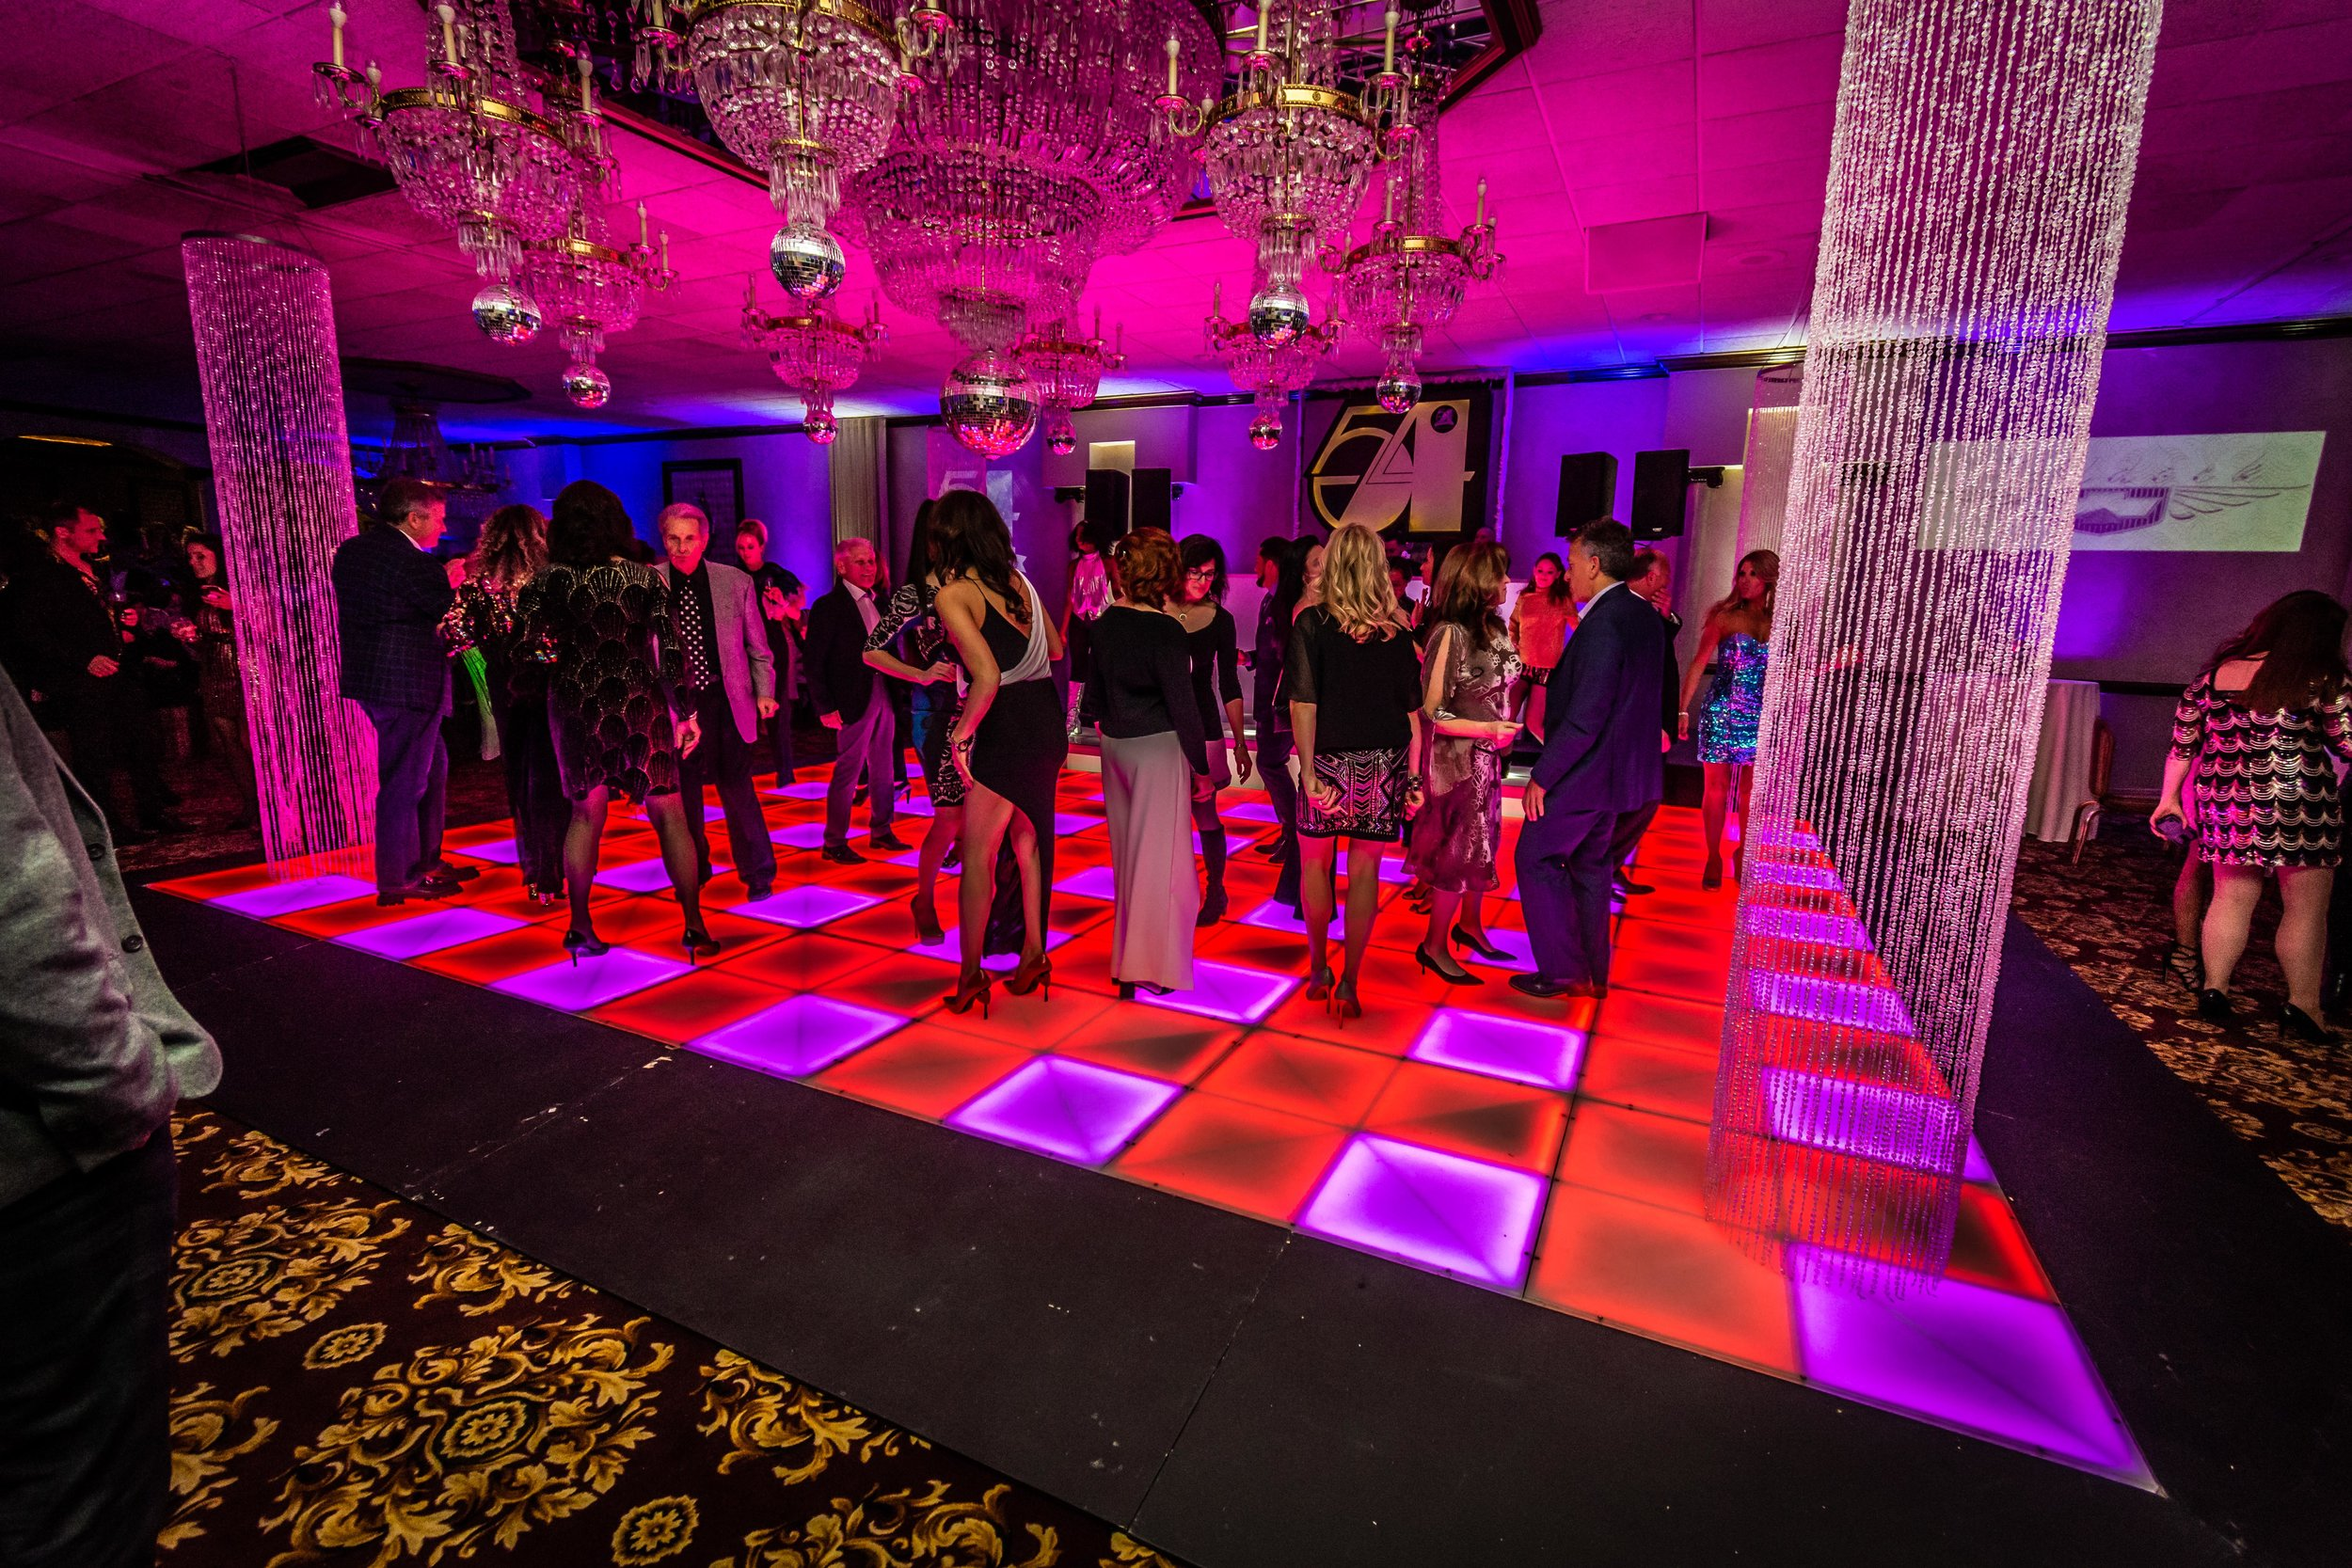 LED Dance Floor Red Purple.jpg